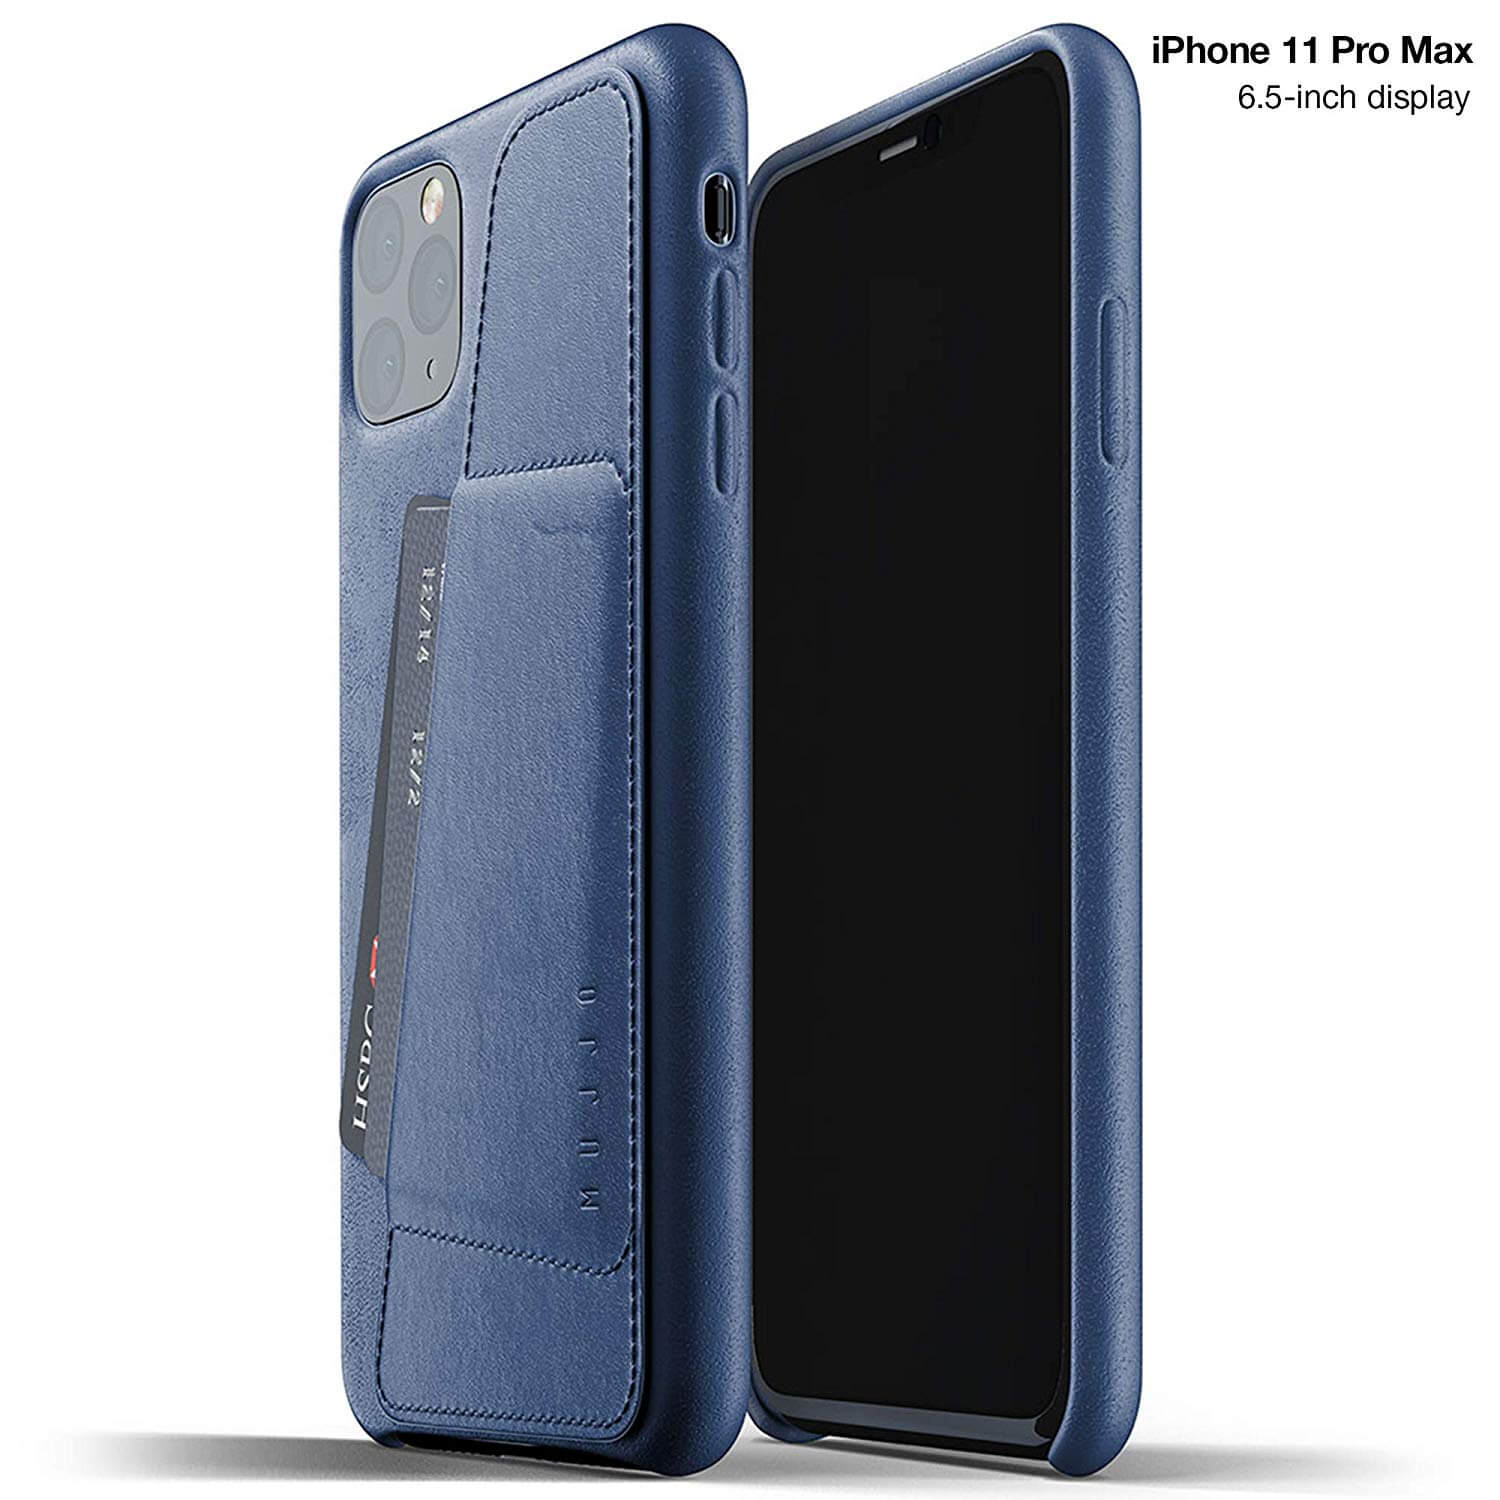 Mujjo Leather Wallet Case for iPhone 11 Pro Max (monaco blue)